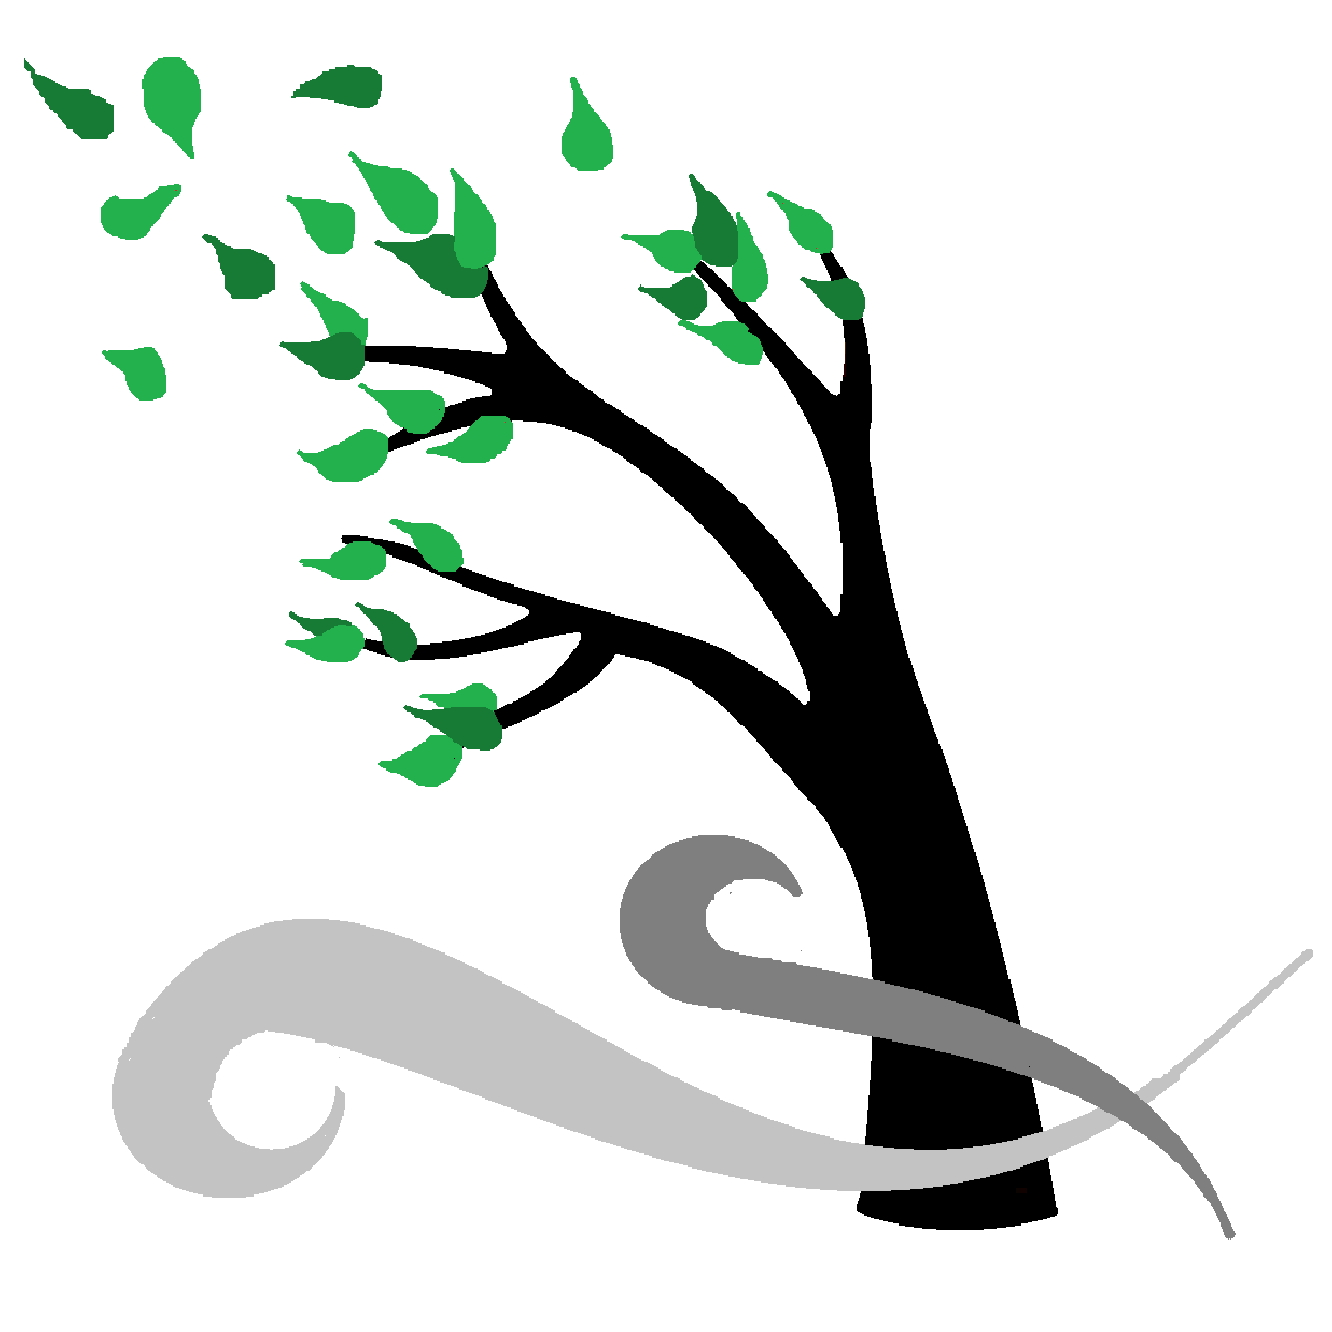 Clipart storm damage png transparent library Storm damage tree clipart - Clip Art Library png transparent library